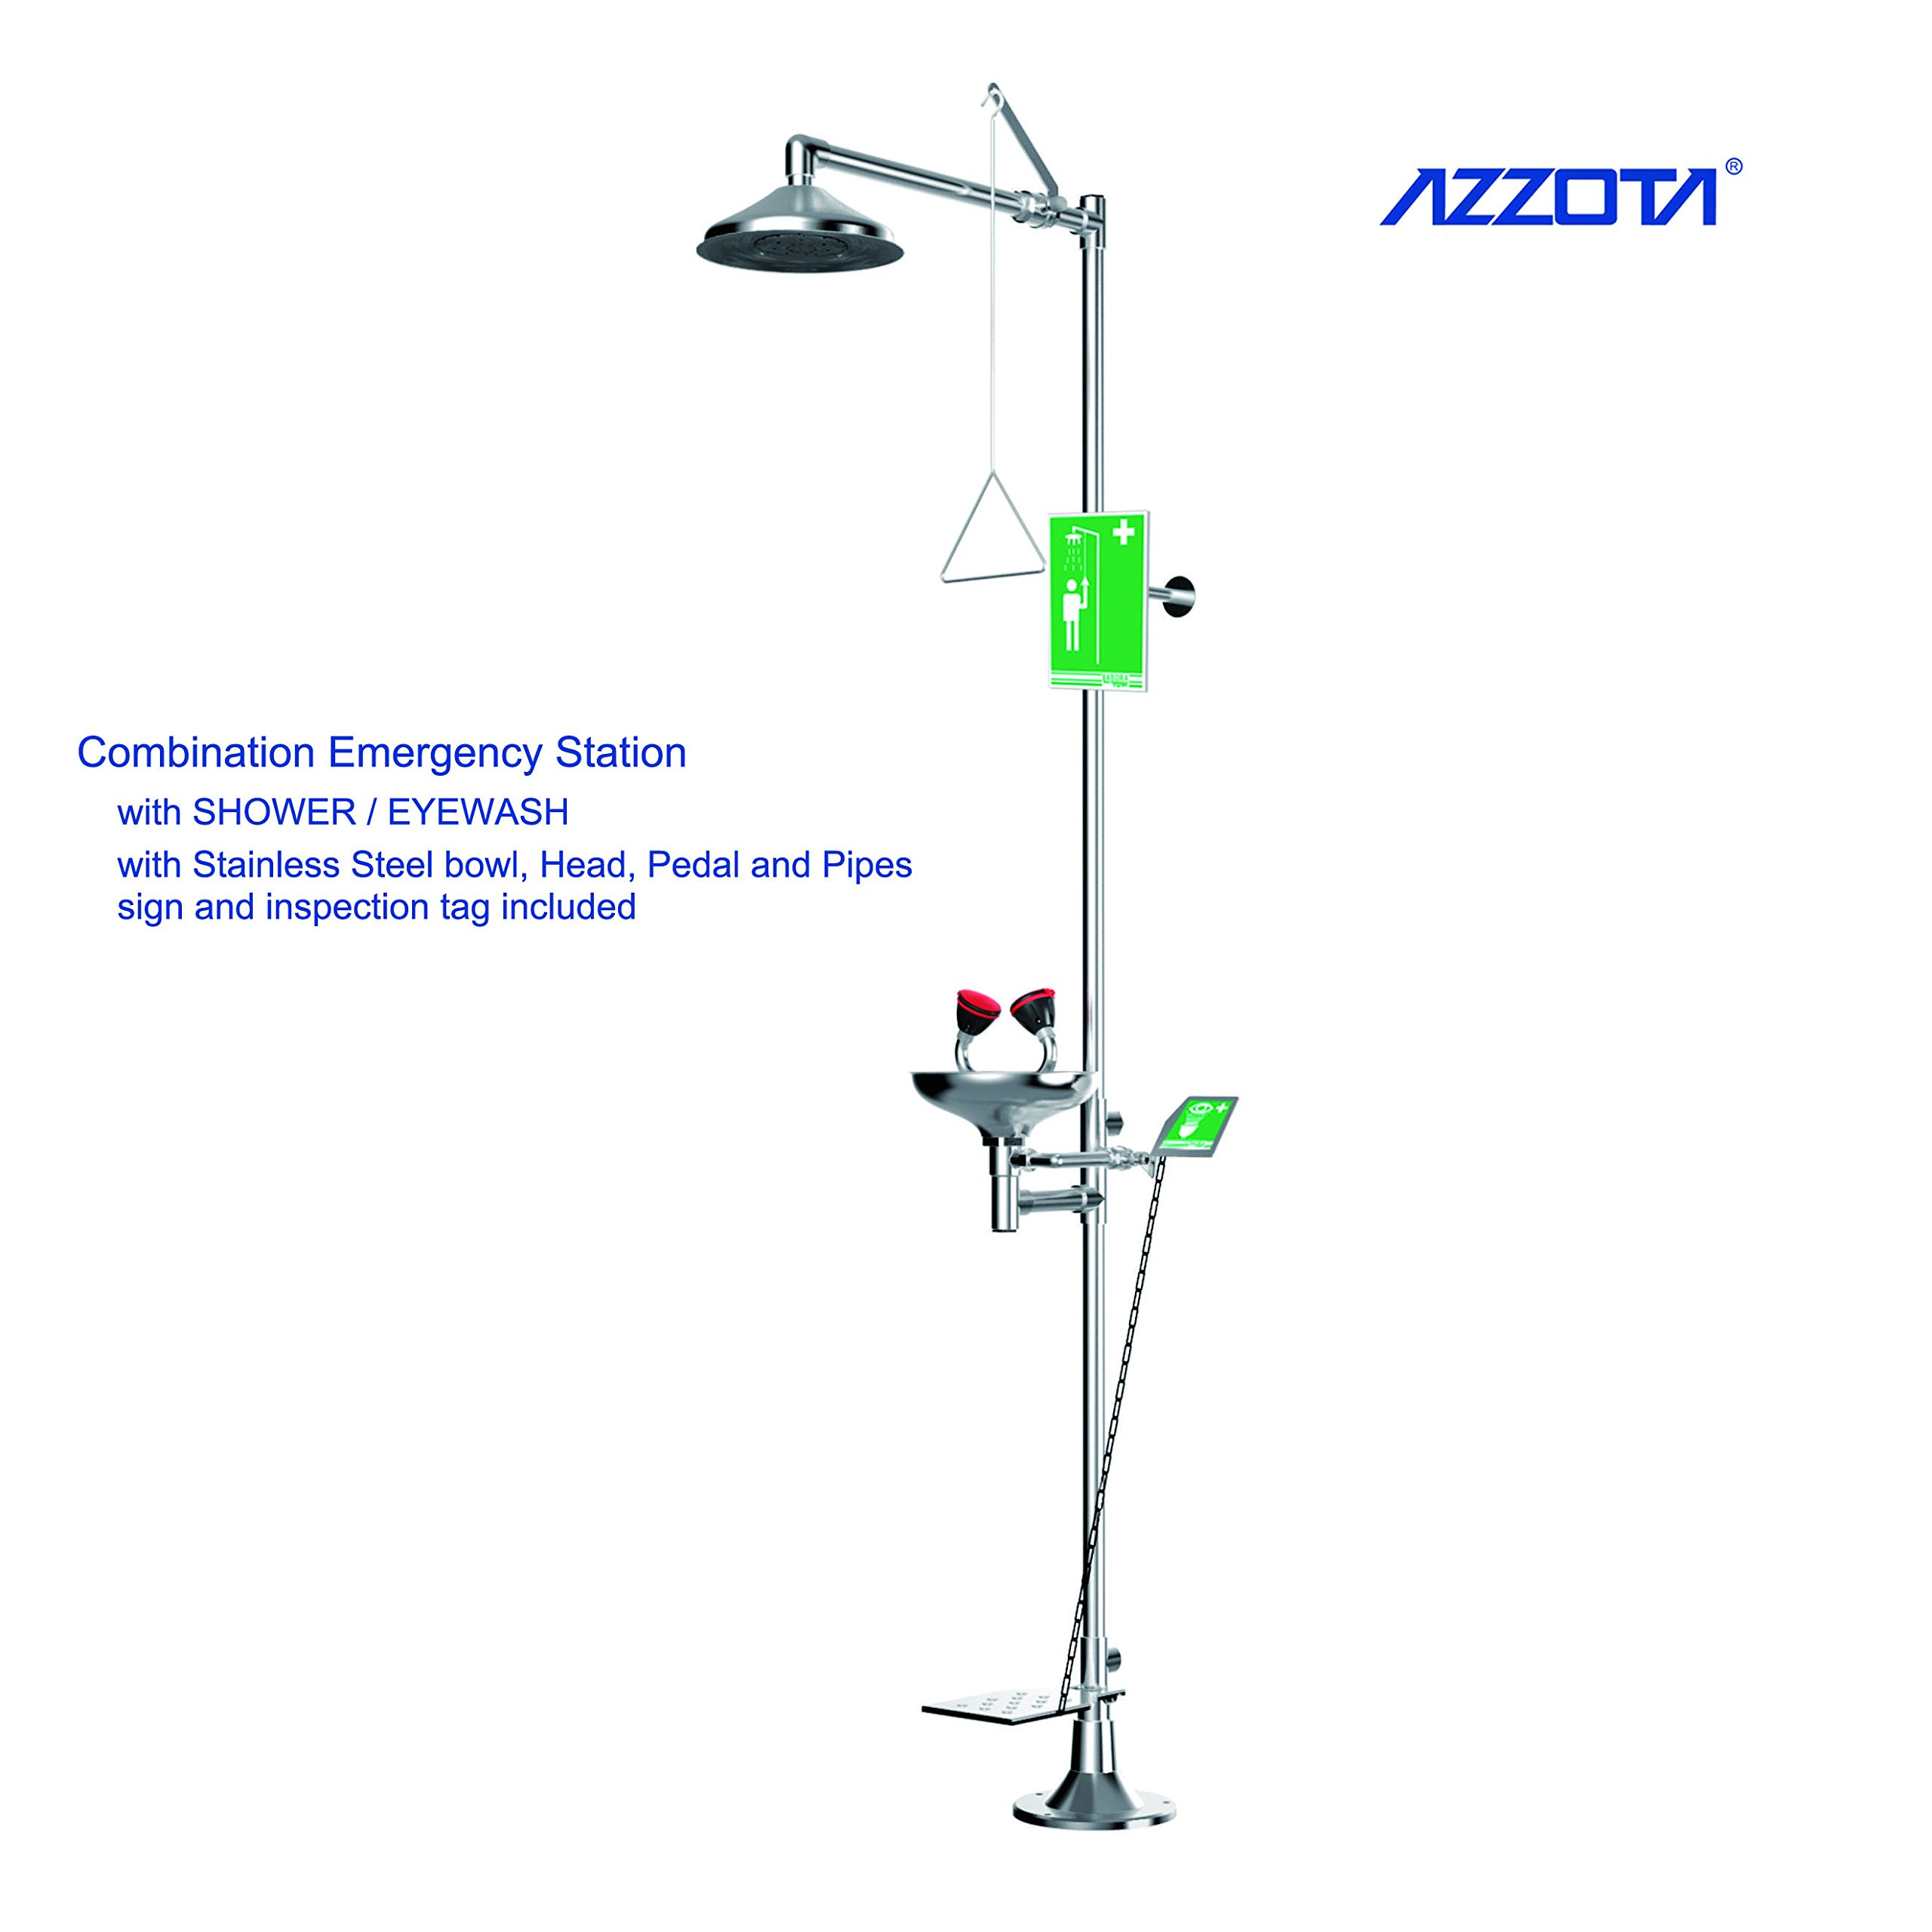 Azzota Combination Emergency Station with SHOWER / EYEWASH with Stainless Steel bowl, head, Pedal and pipes, sign and inspection tag included